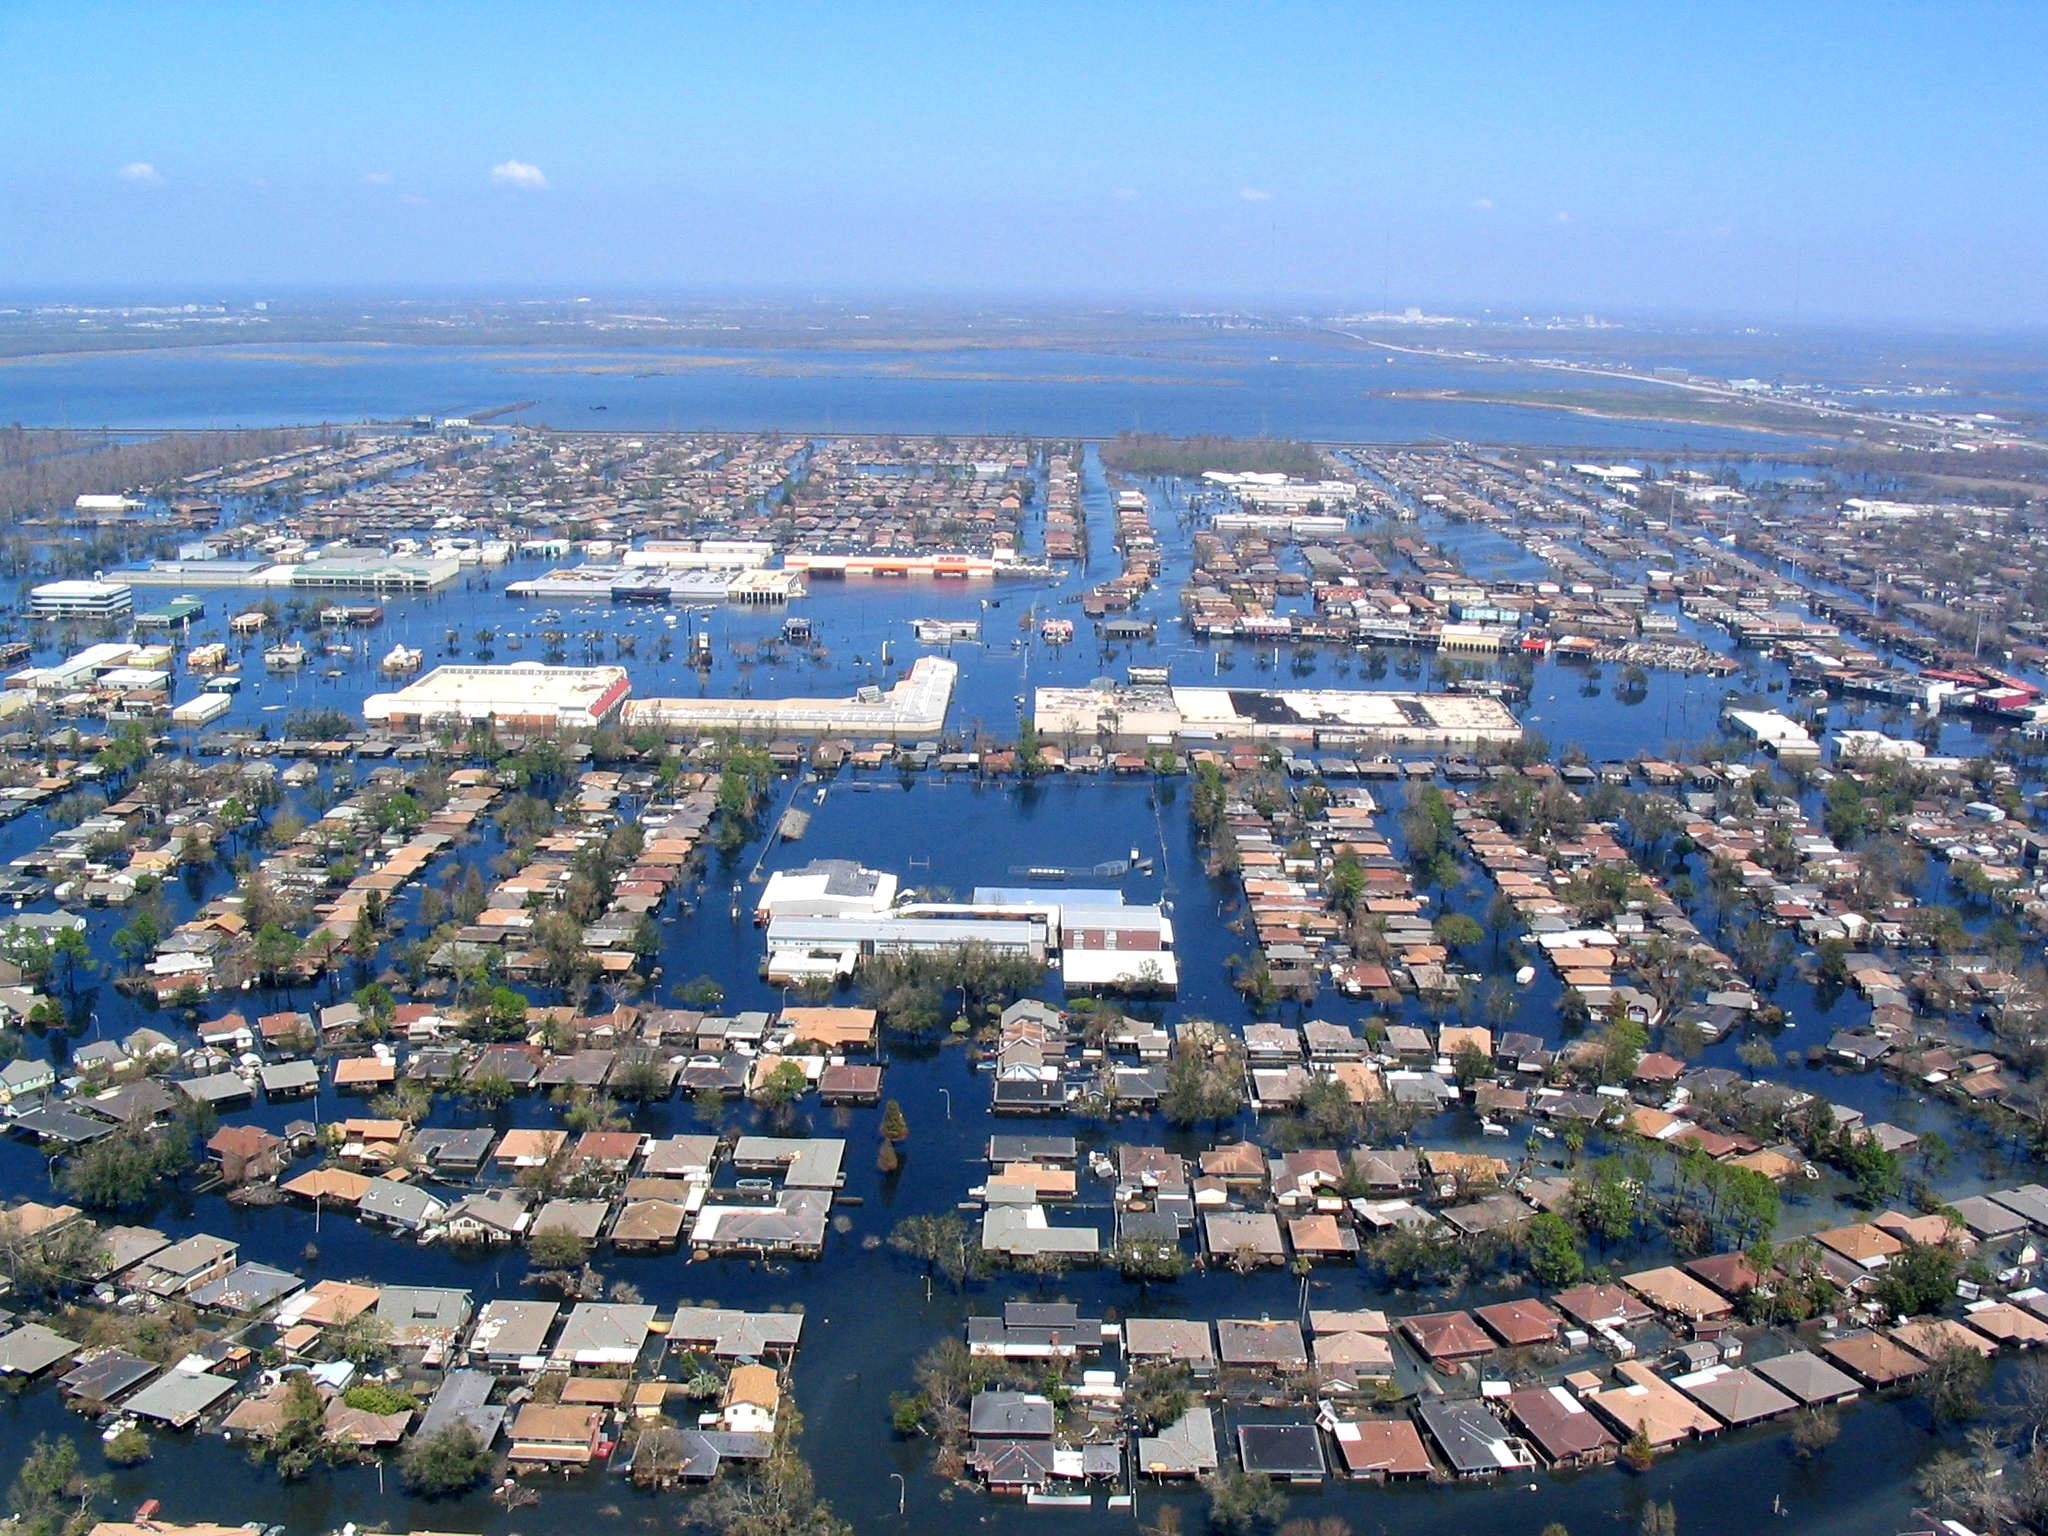 Hurricane Damage Commercial Claims Business Goodman-Gable-Gould/Adjusters International